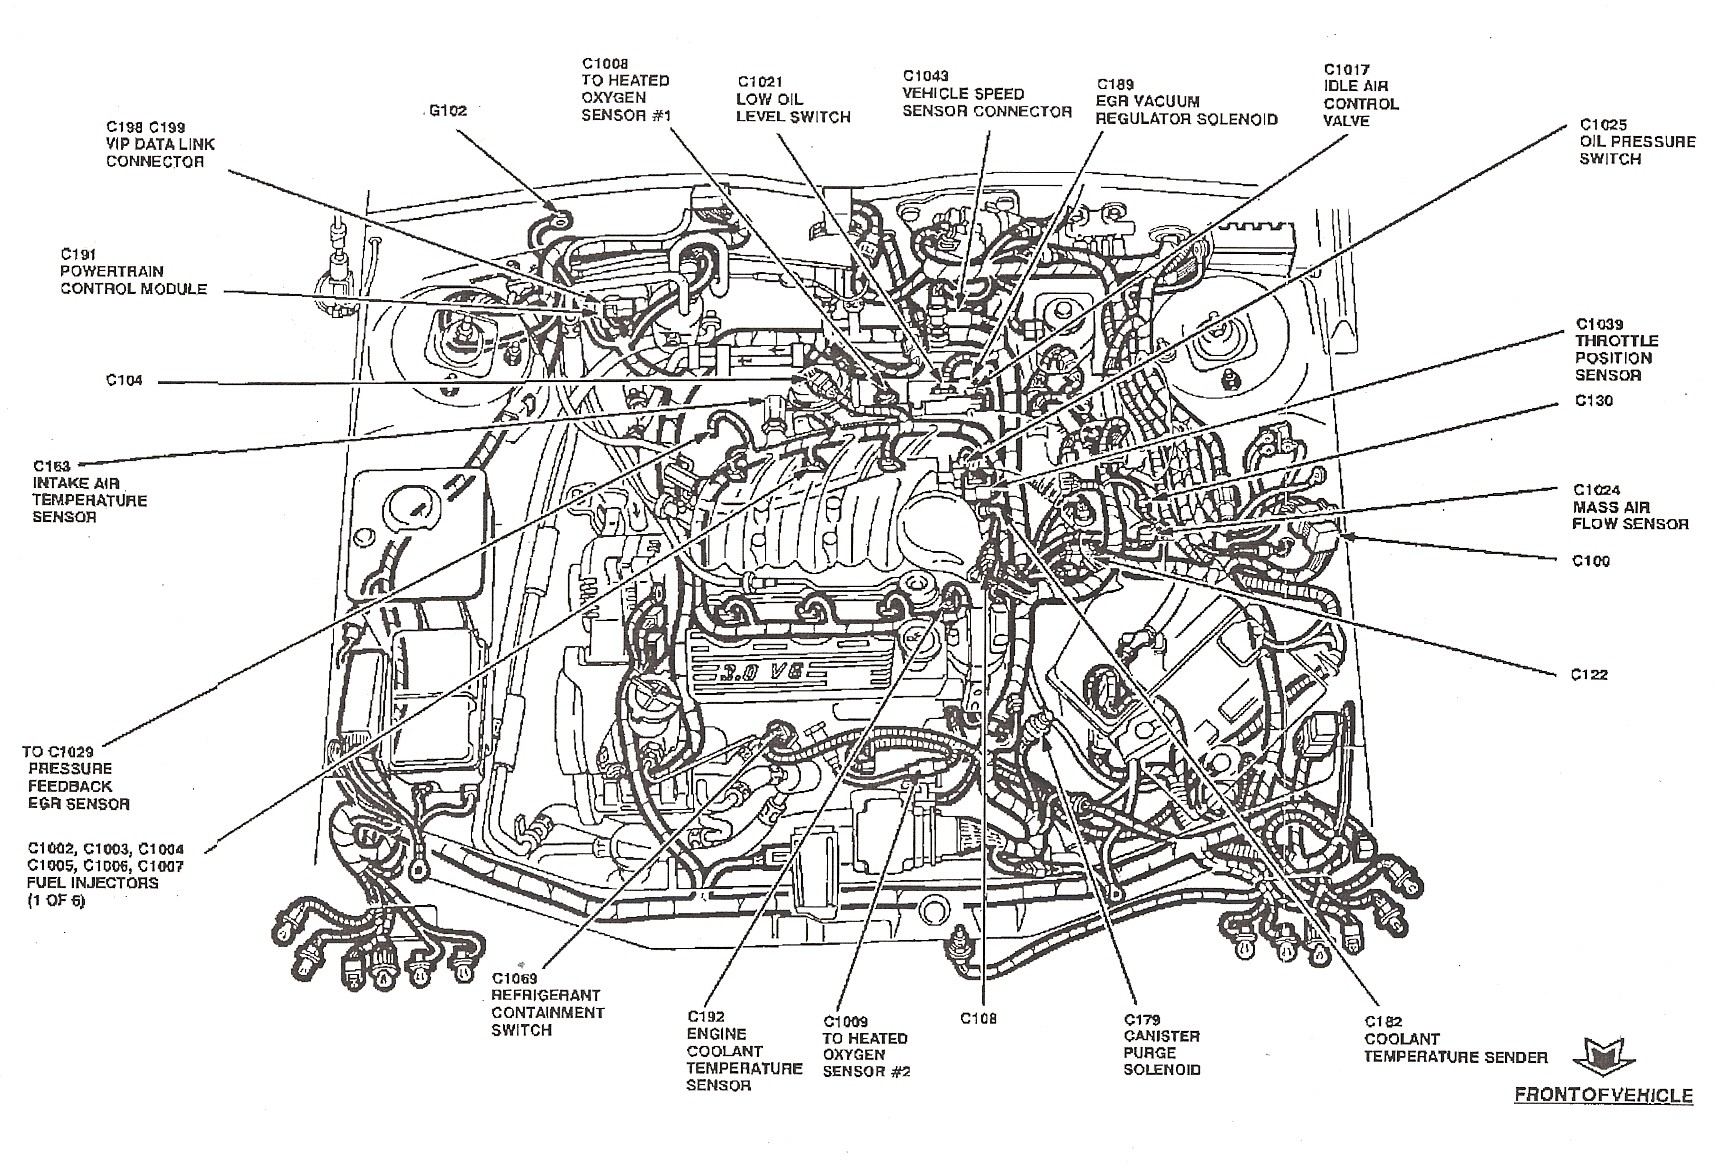 2003 Ford Focus Zx3 Engine Diagram - Wiring Diagram P  F Engine Wiring Diagram on 03 f250 radio install, 03 f250 voltage regulator, 03 f250 tires, 03 silverado wiring diagram, 03 taurus wiring diagram, 03 f250 neutral safety switch, 03 malibu wiring diagram, 03 trailblazer wiring diagram, 03 f250 oil cooler, 03 ranger wiring diagram, 03 durango wiring diagram, 03 tahoe wiring diagram, ford fuel pump relay diagram, 03 expedition wiring diagram, 03 f150 wiring diagram,